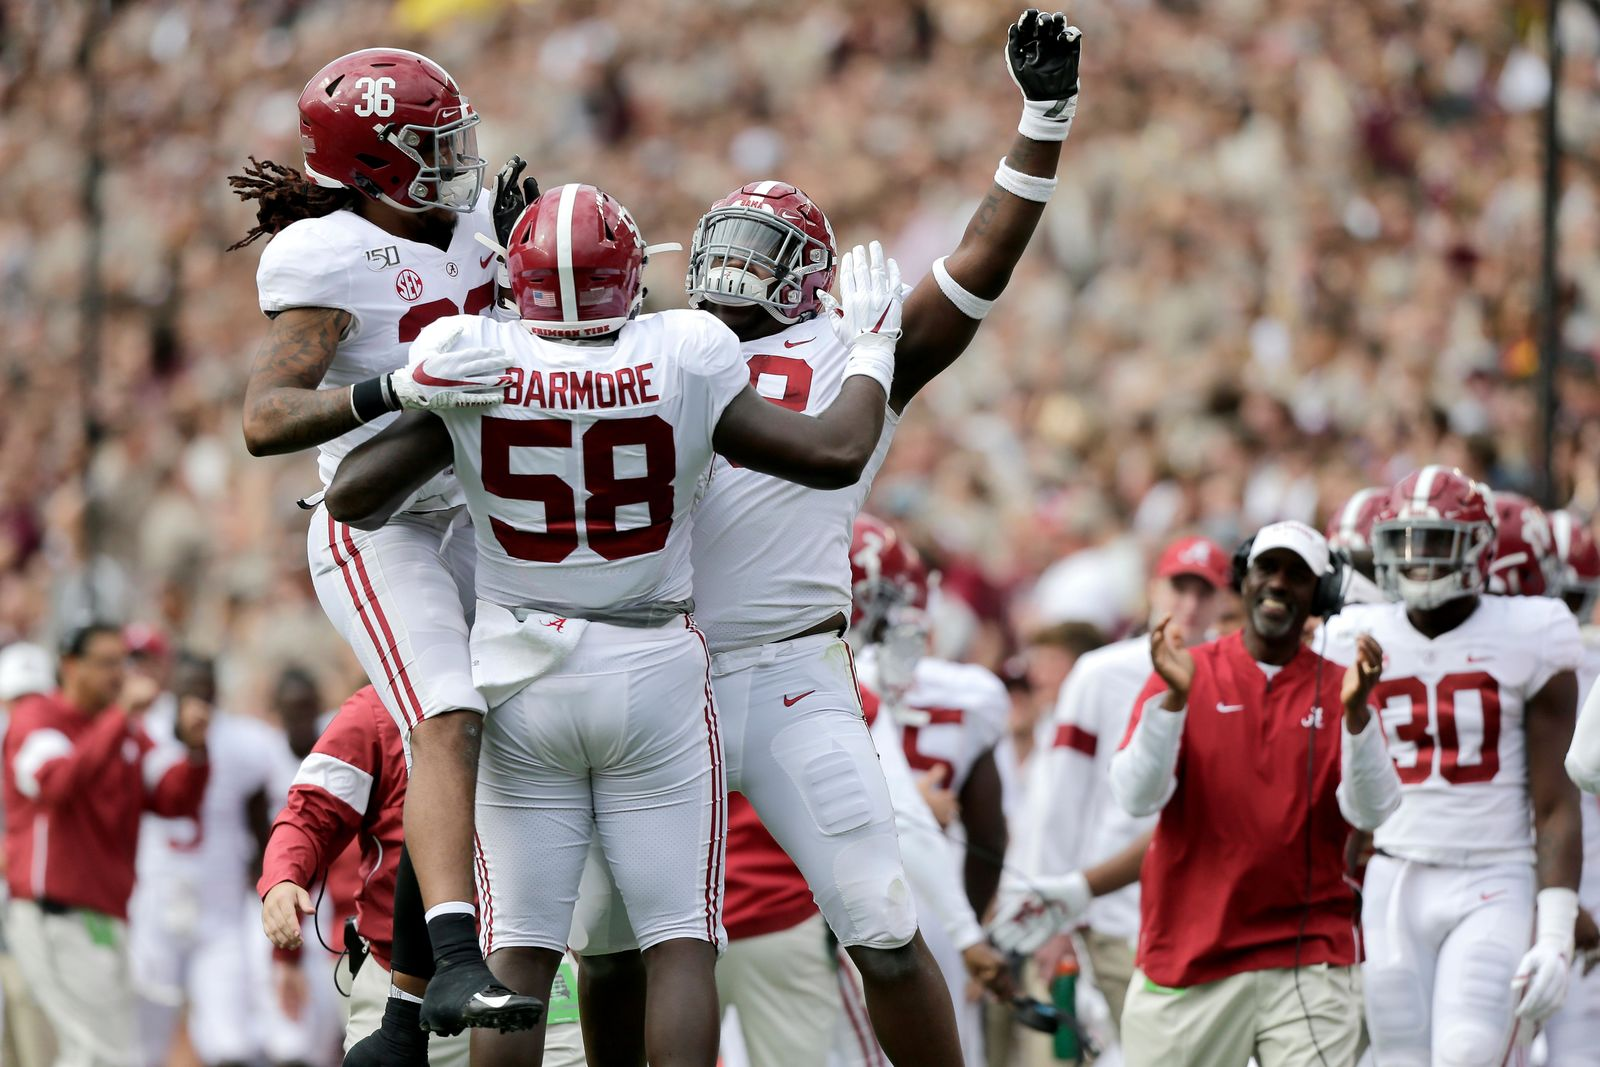 Alabama defensive lineman Christian Barmore (58) celebrates with teammates after sacking Texas A&M quarterback Kellen Mond (11) during the first half of an NCAA college football game, Saturday, Oct. 12, 2019, in College Station, Texas. (AP Photo/Sam Craft)